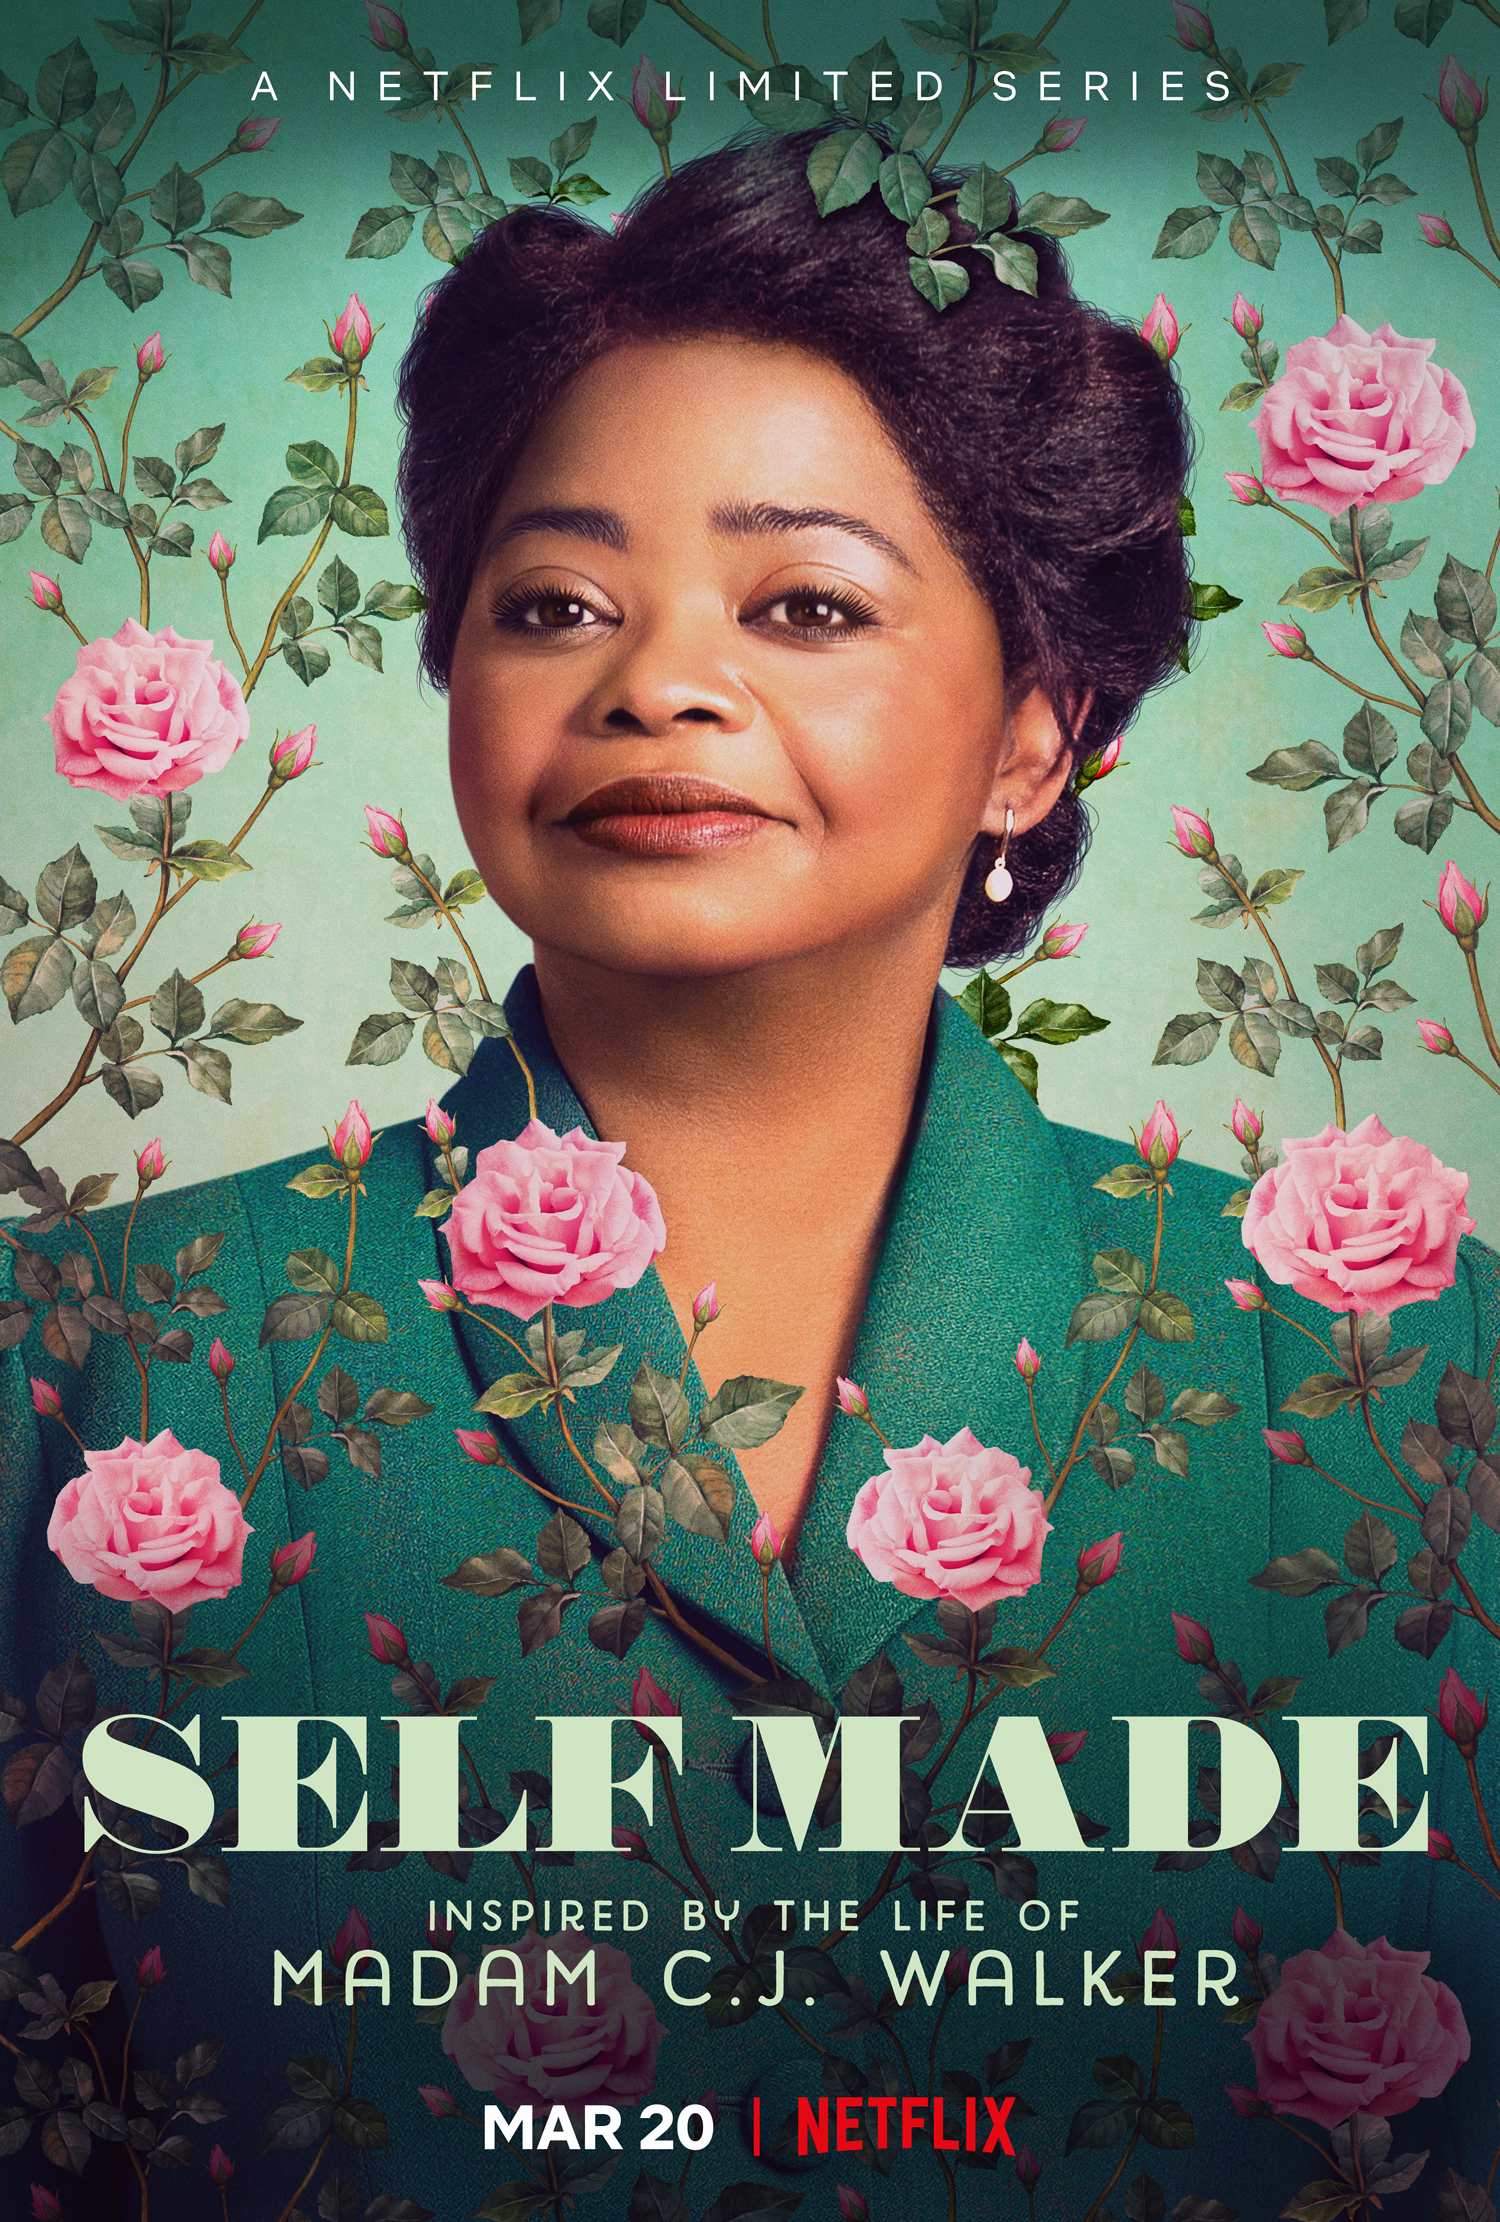 First Look: 'Self Made' Starring Octavia Spencer